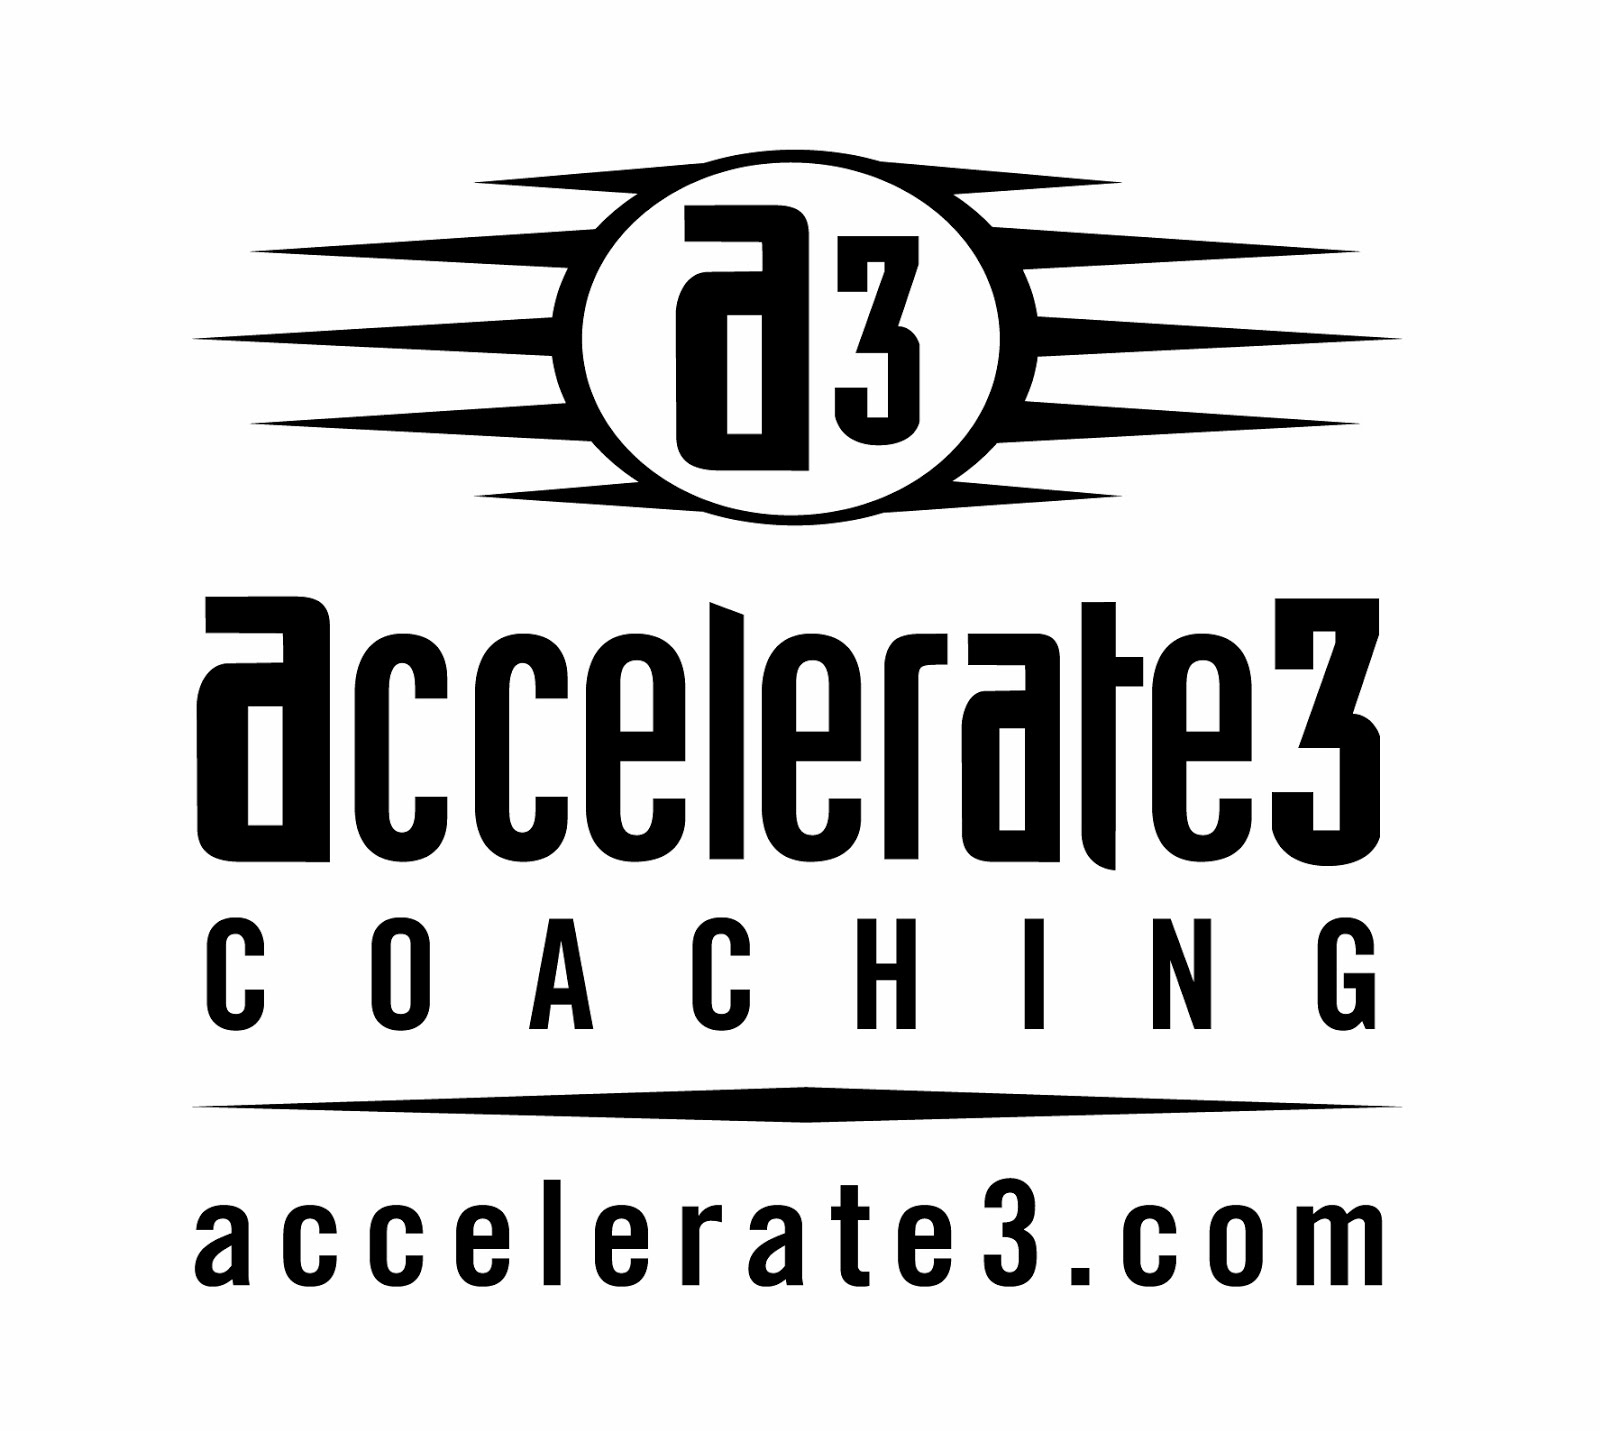 Accelerate 3 Coaching